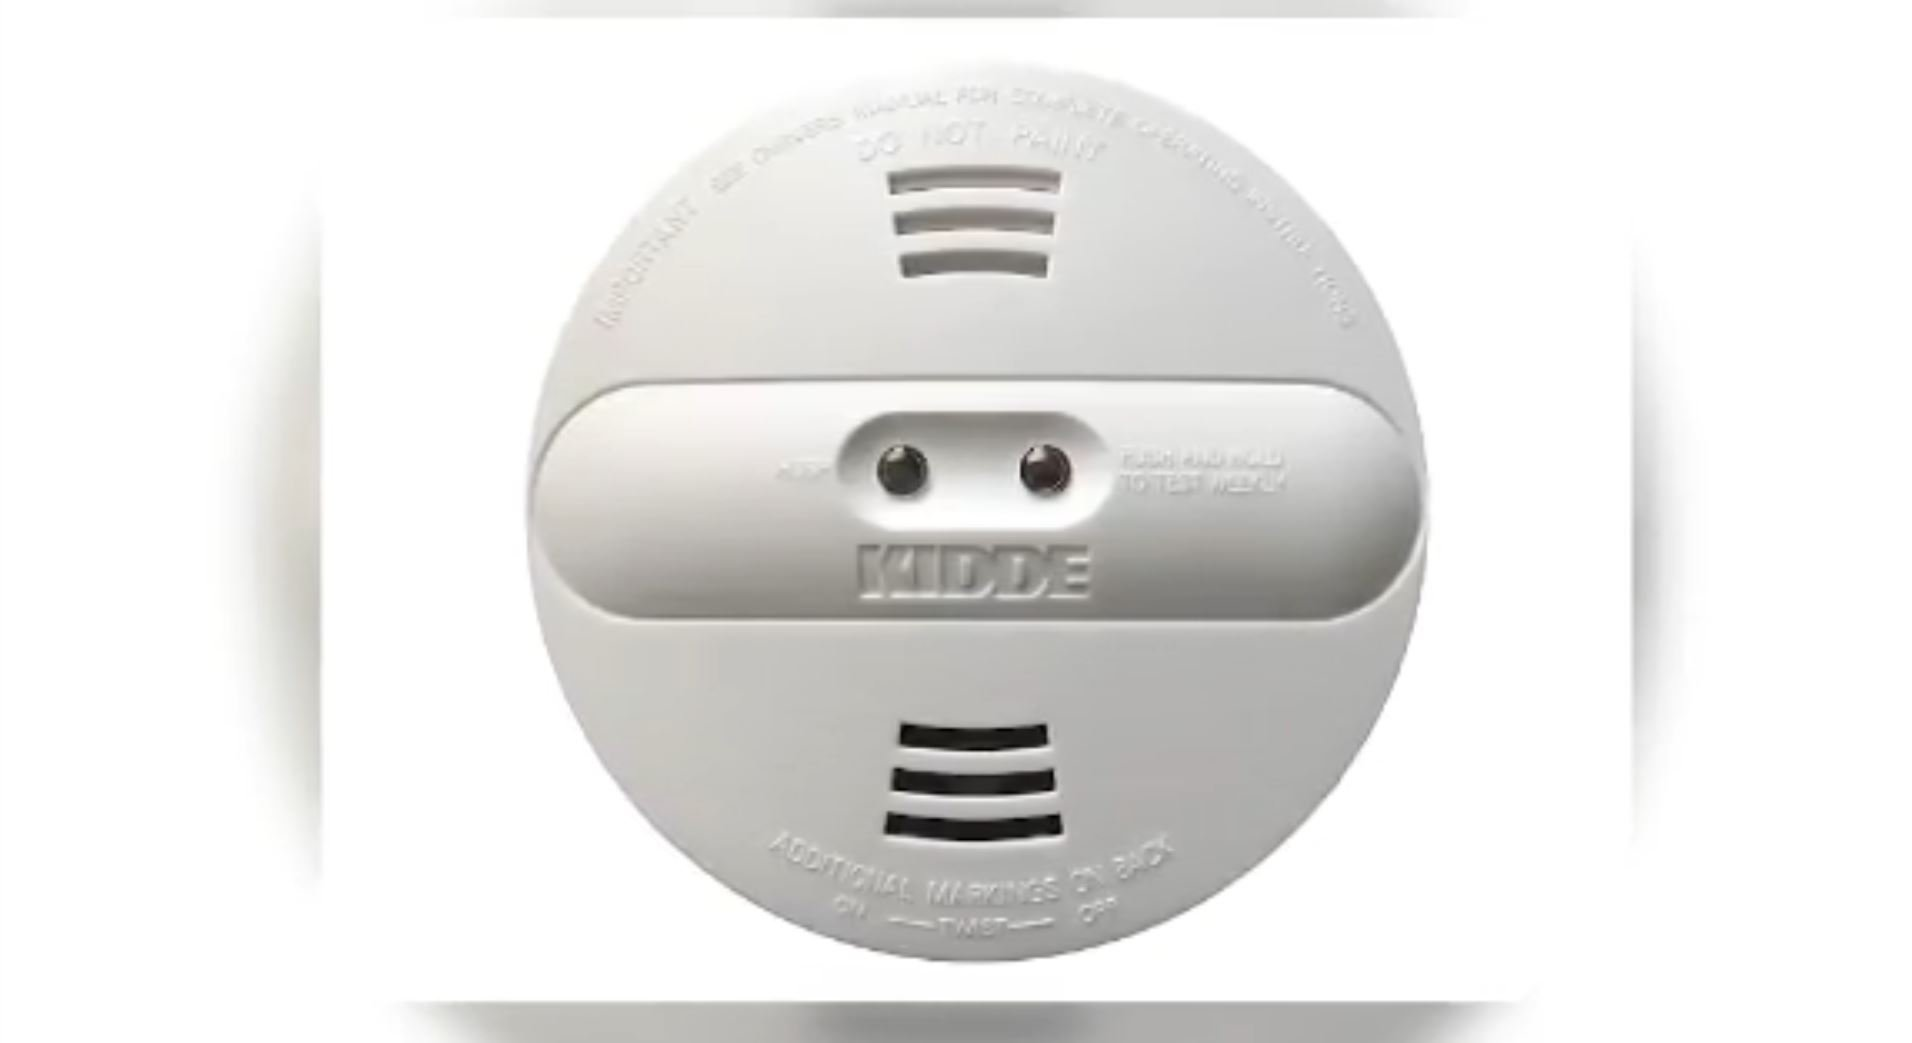 Kidde recalls smoke detector due to alarm failure